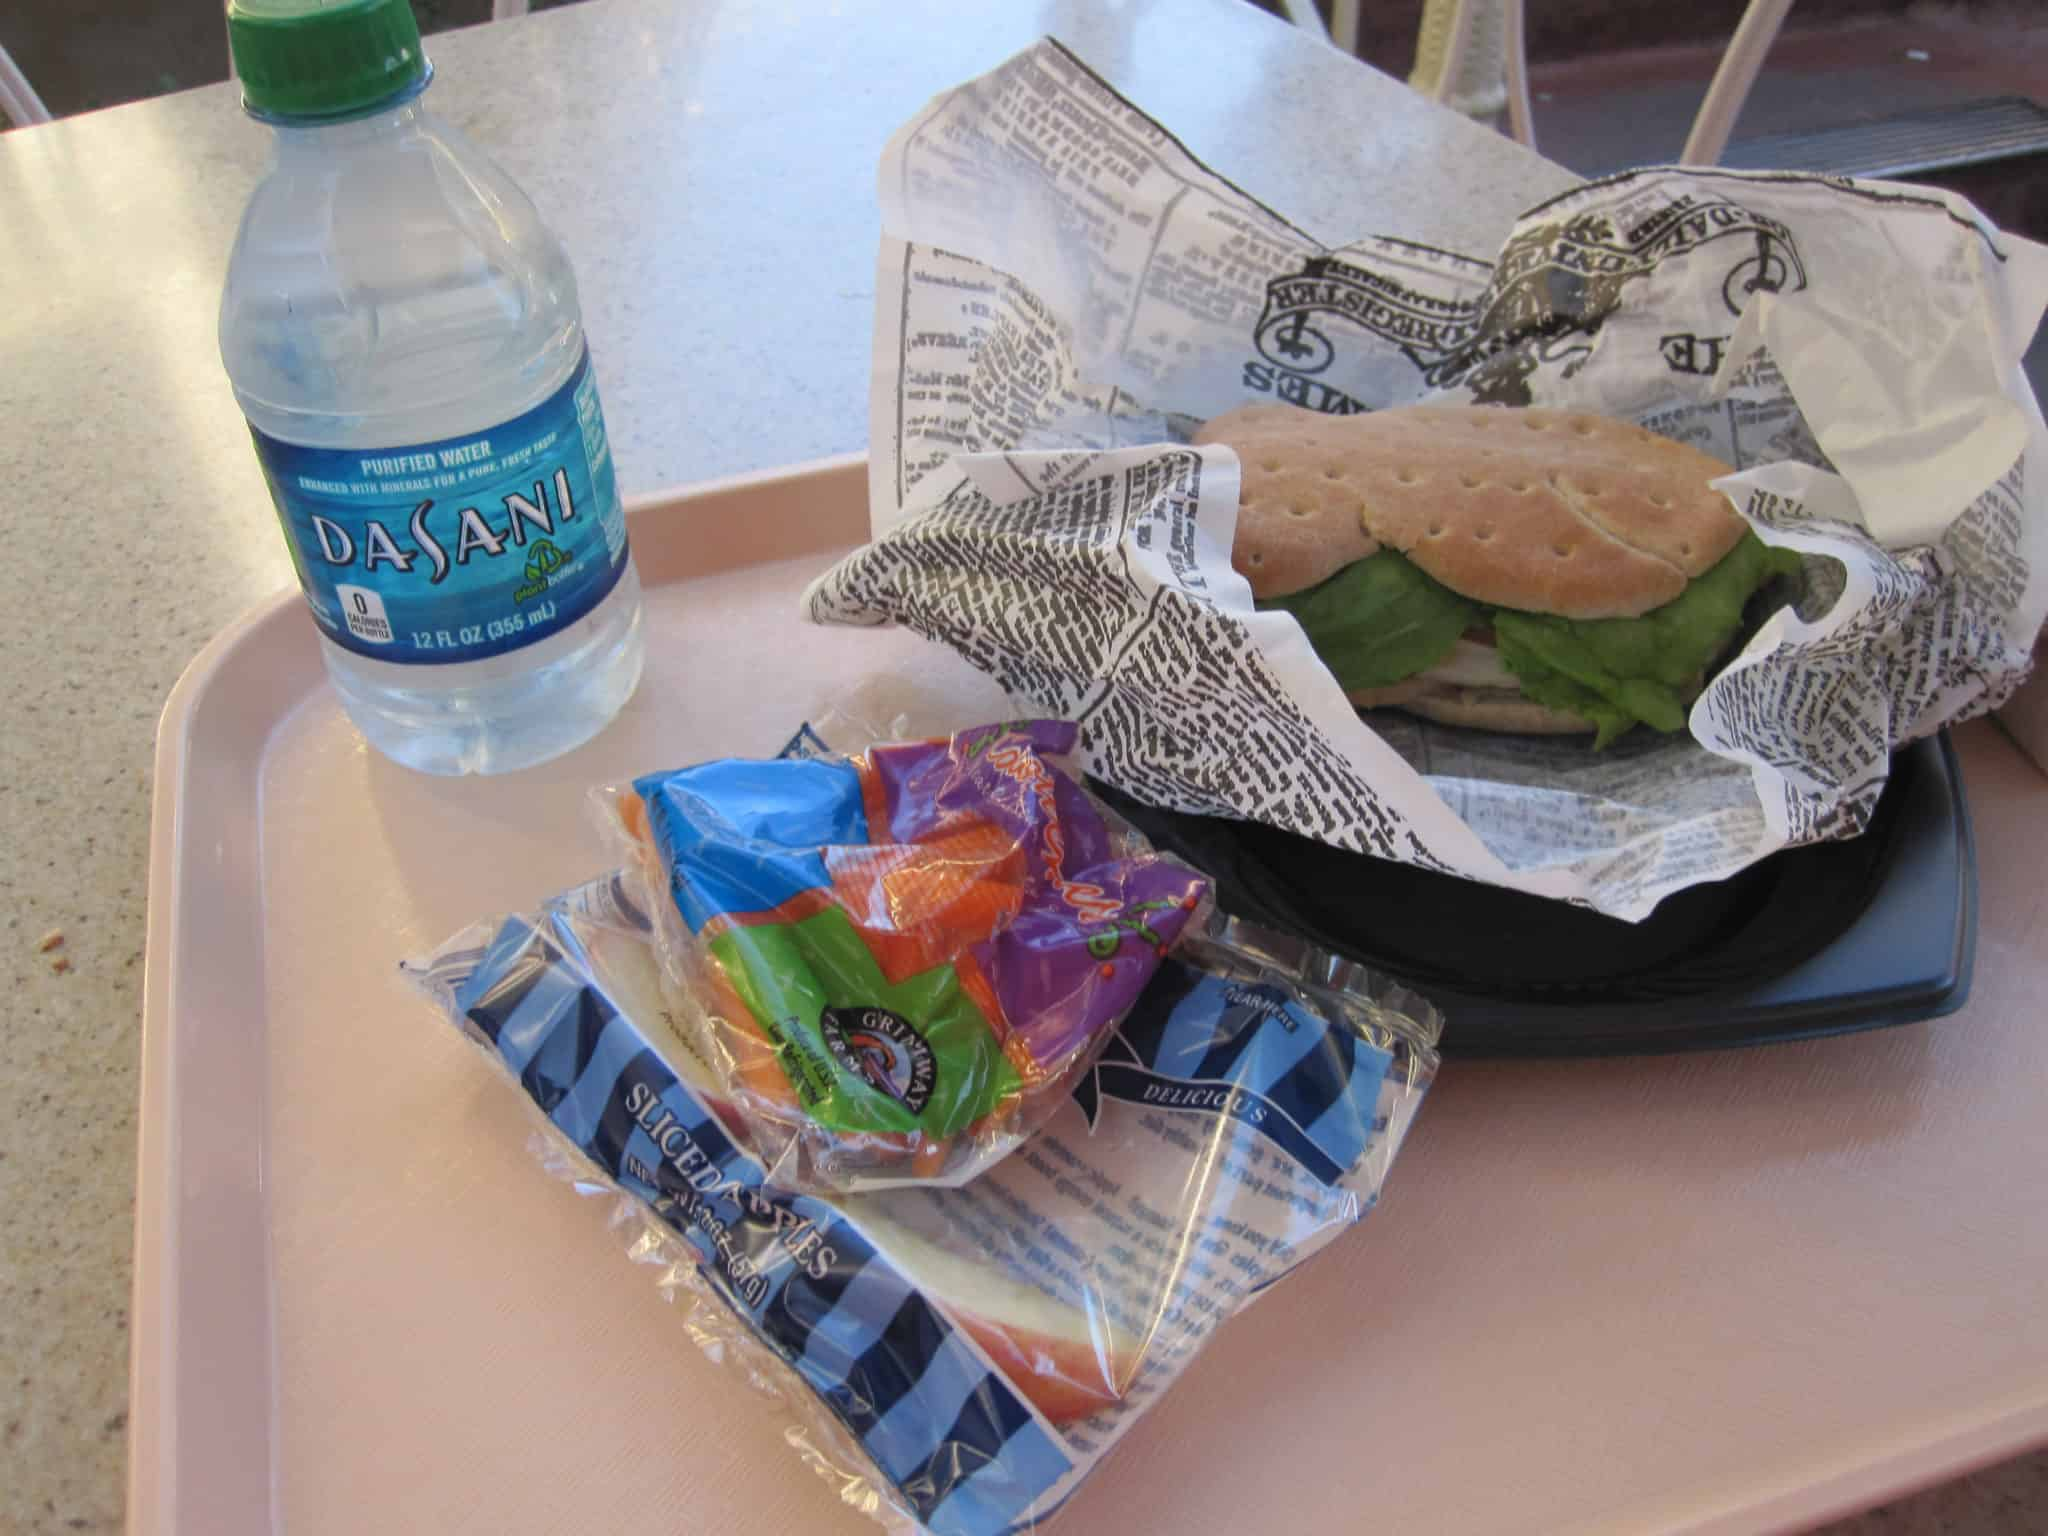 Healthy Disneyland Dining Guide. Kids' Mickey Check Meal from Jolly Holiday Bakery Cafe. 600 calories or less.